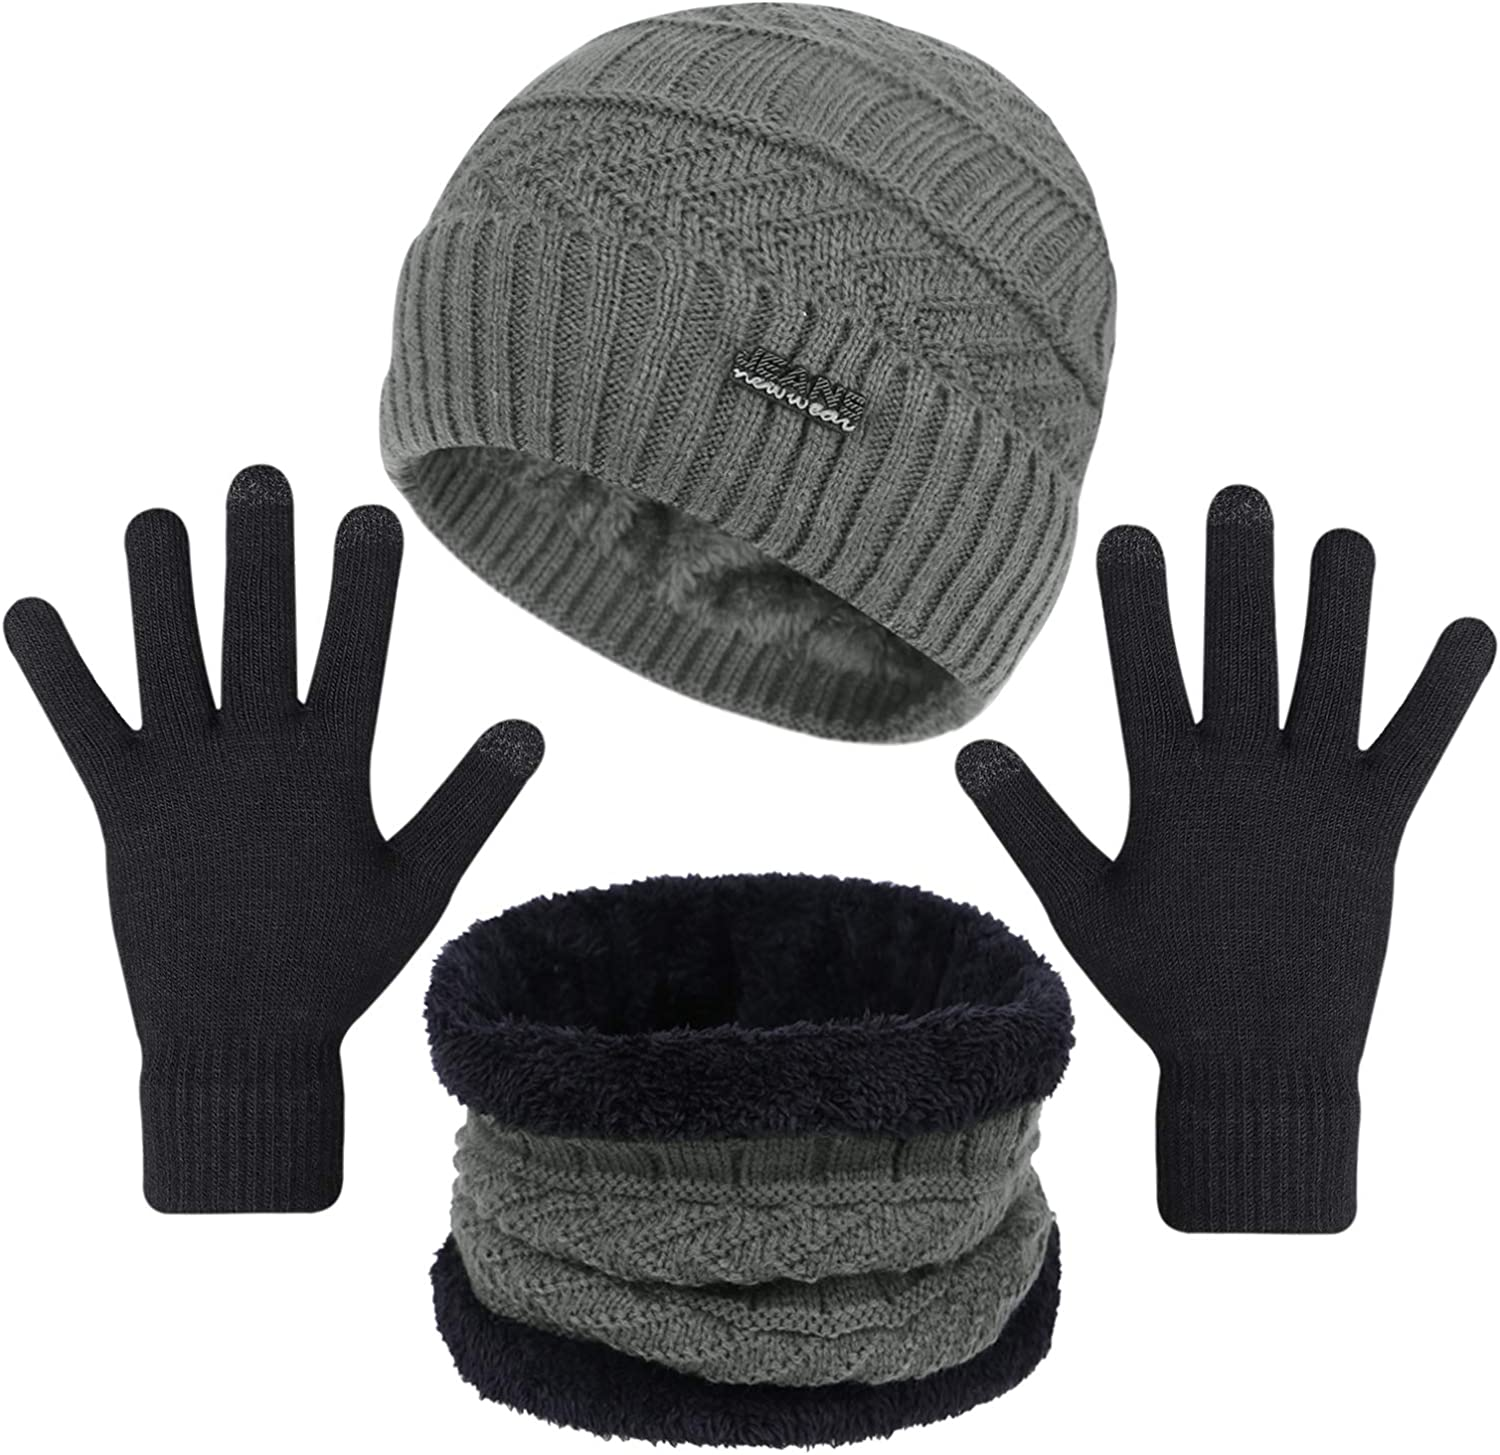 3-Pieces Winter Max 47% OFF Beanie Hats Scarf Finally resale start and f Set Screen Touch Gloves